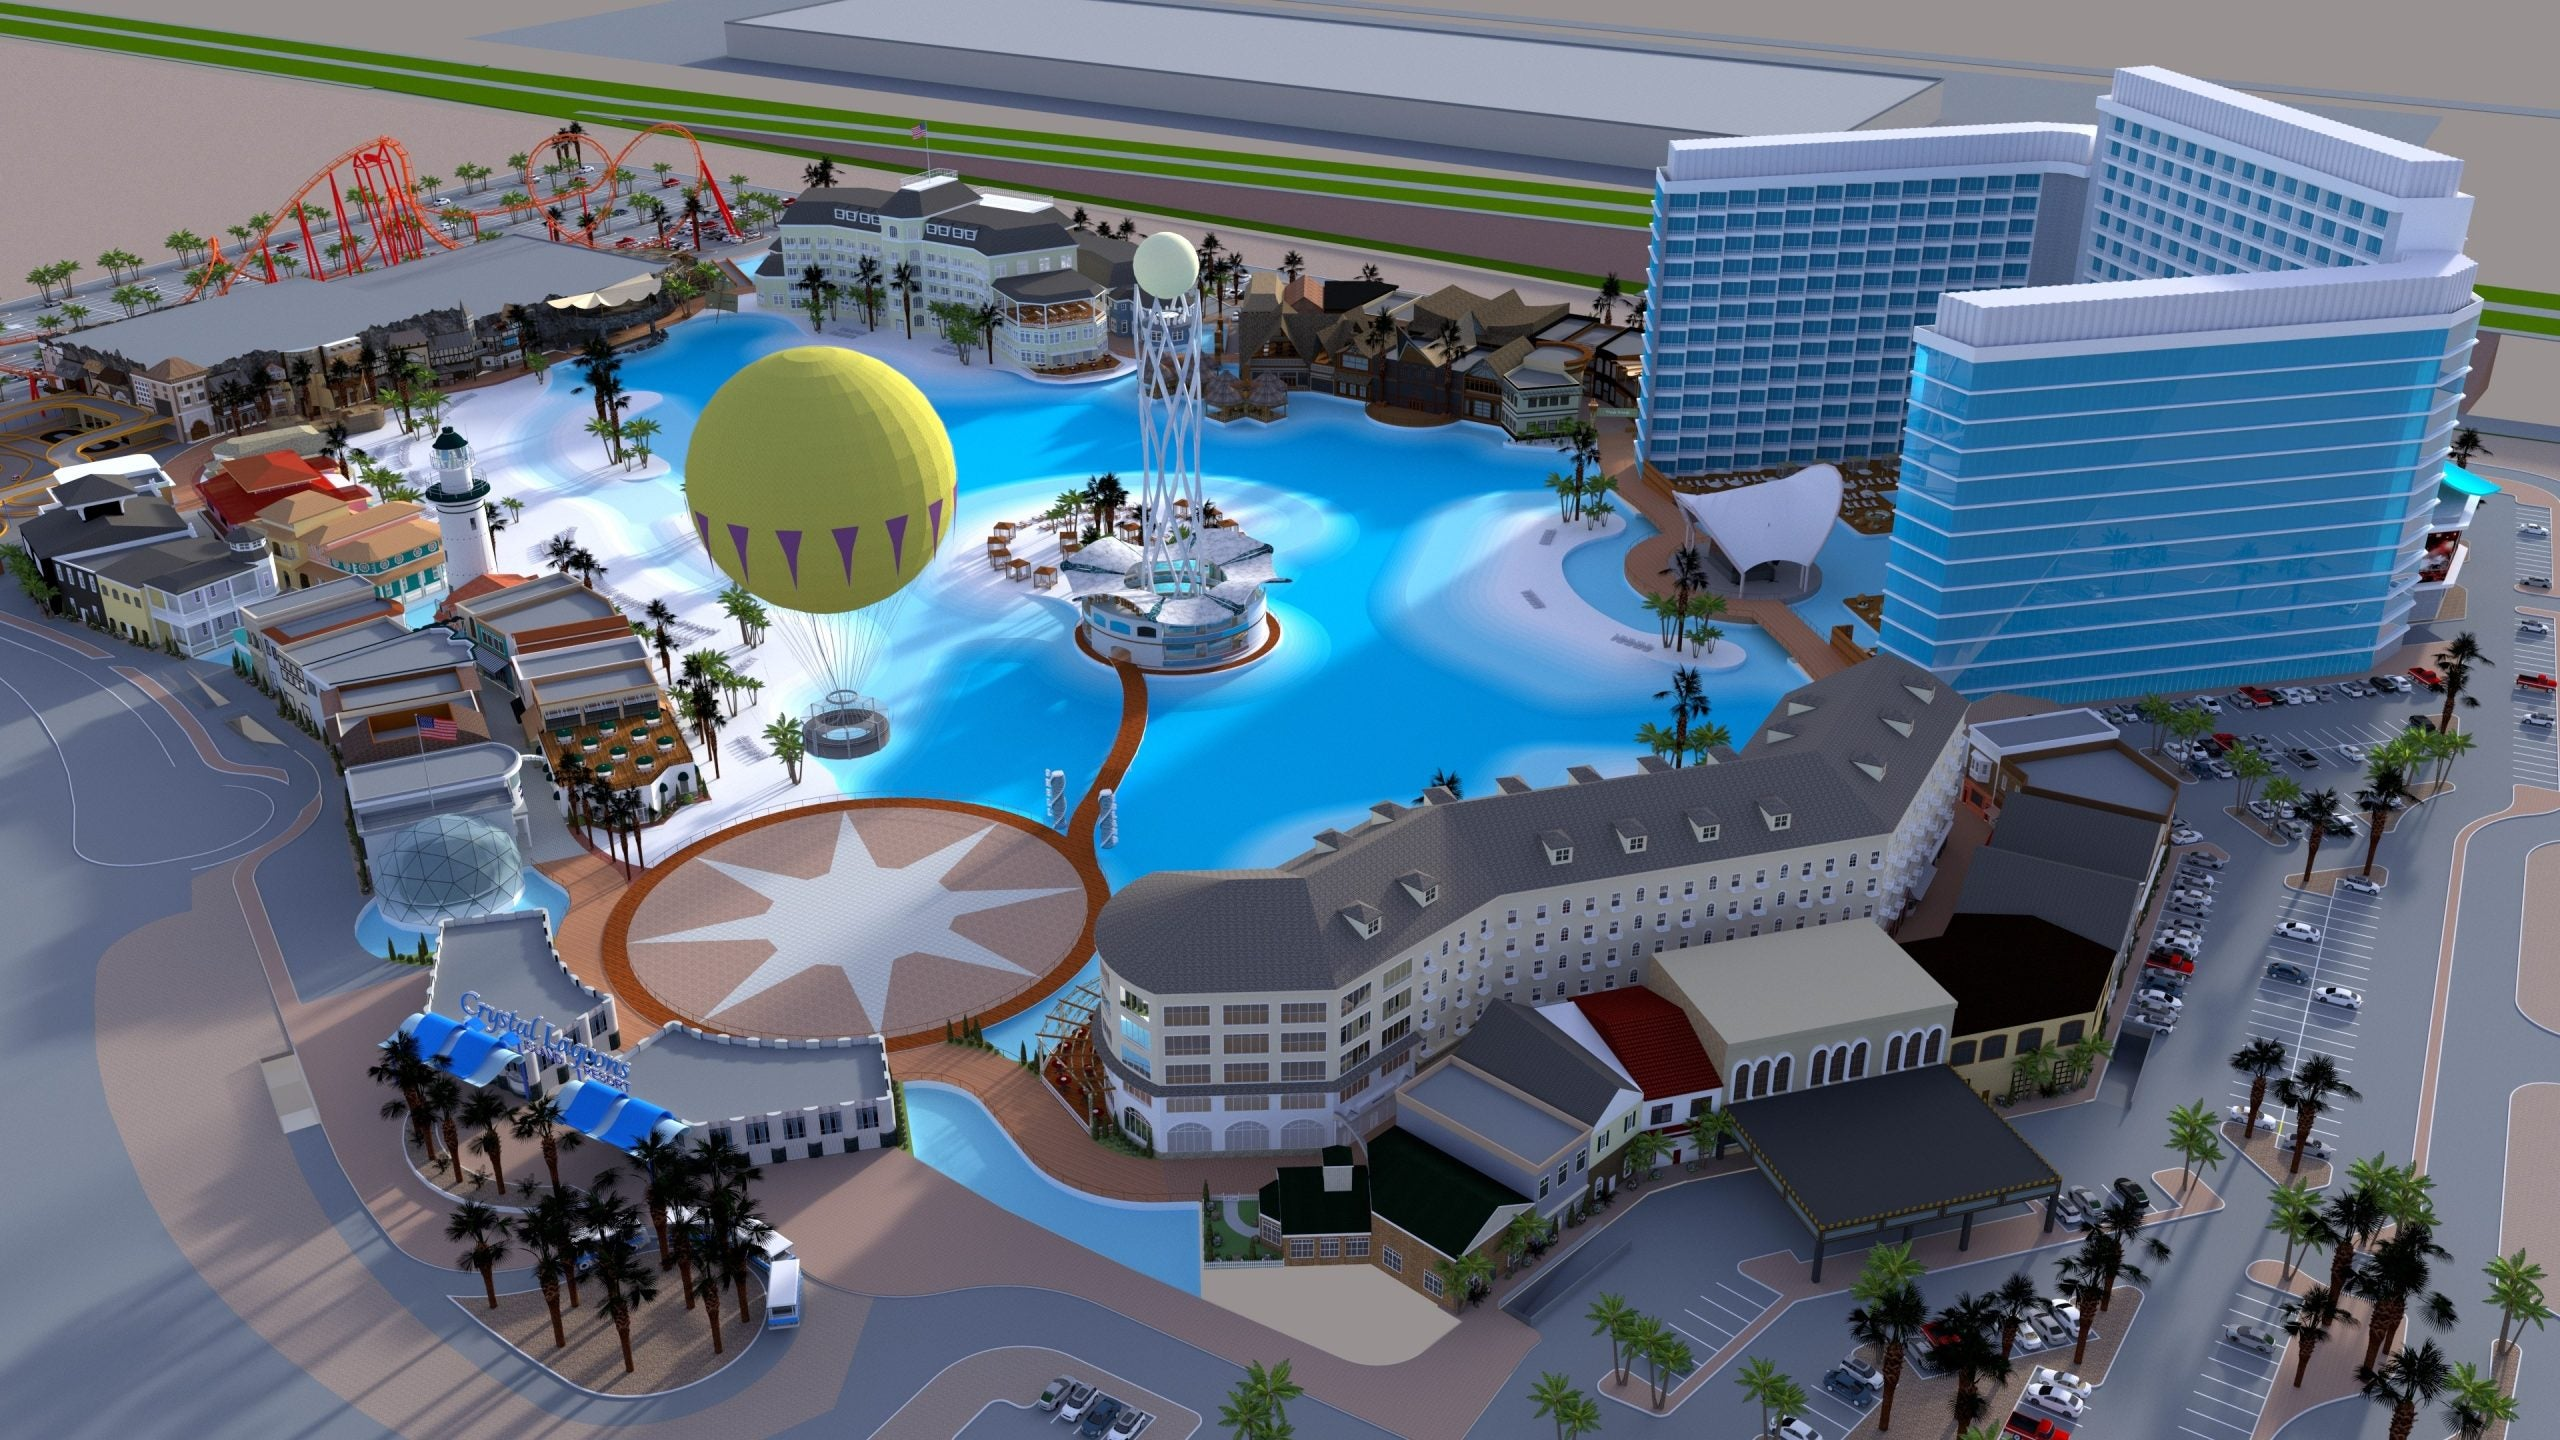 Start your engines: New Arizona theme park to include Hot Wheels roller coaster - The Points Guy